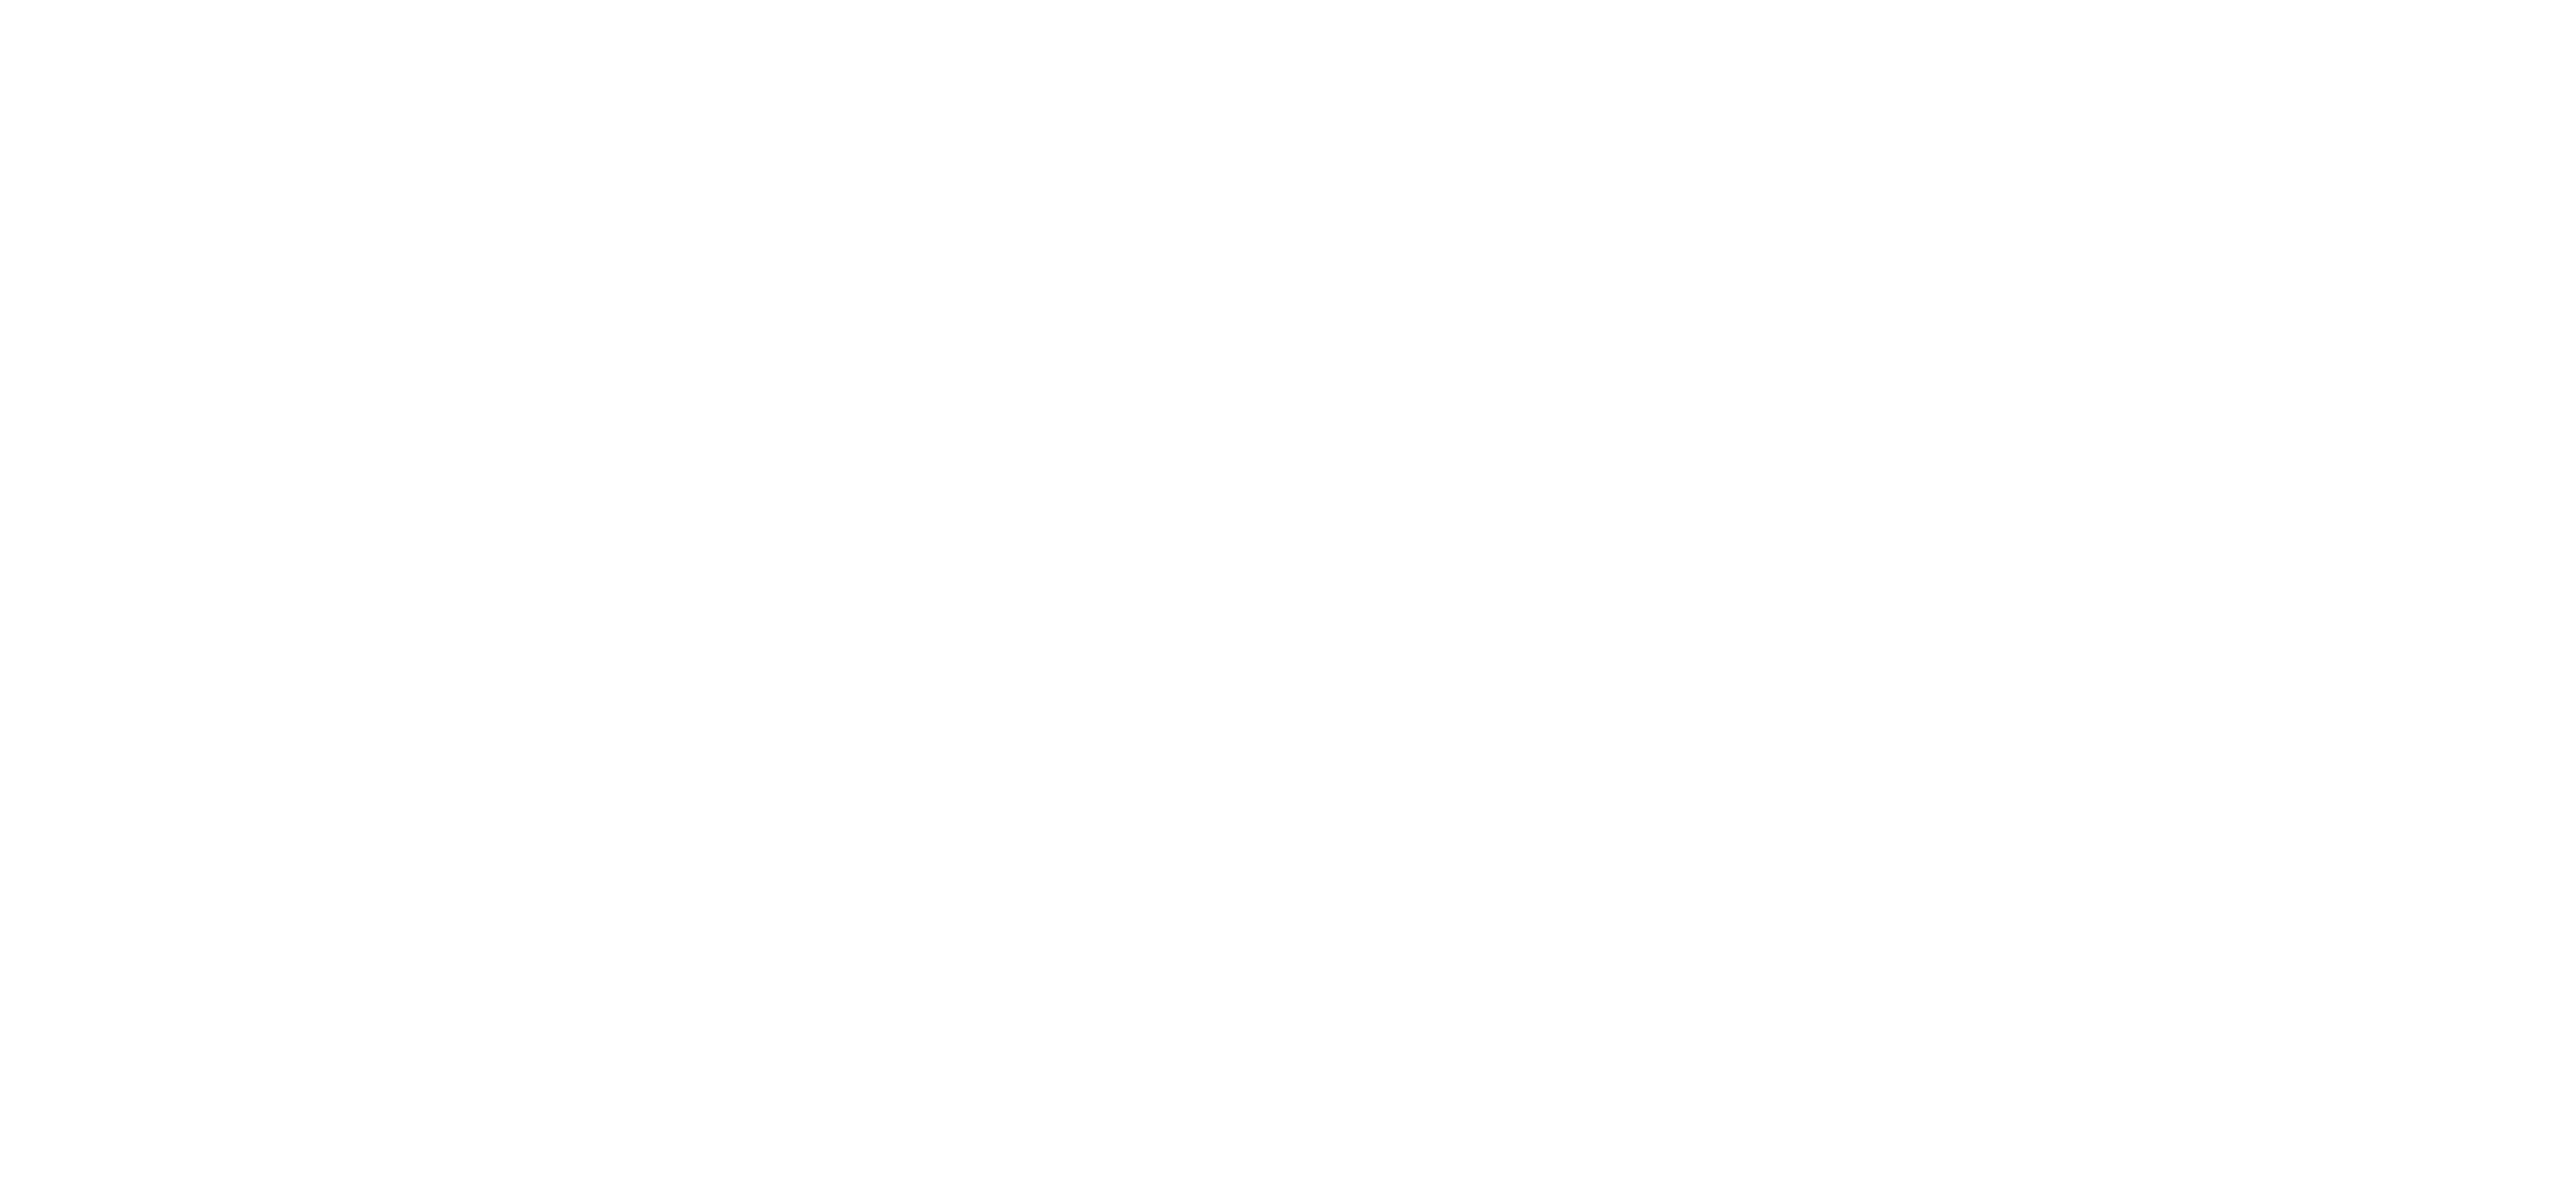 connectgrowsupport